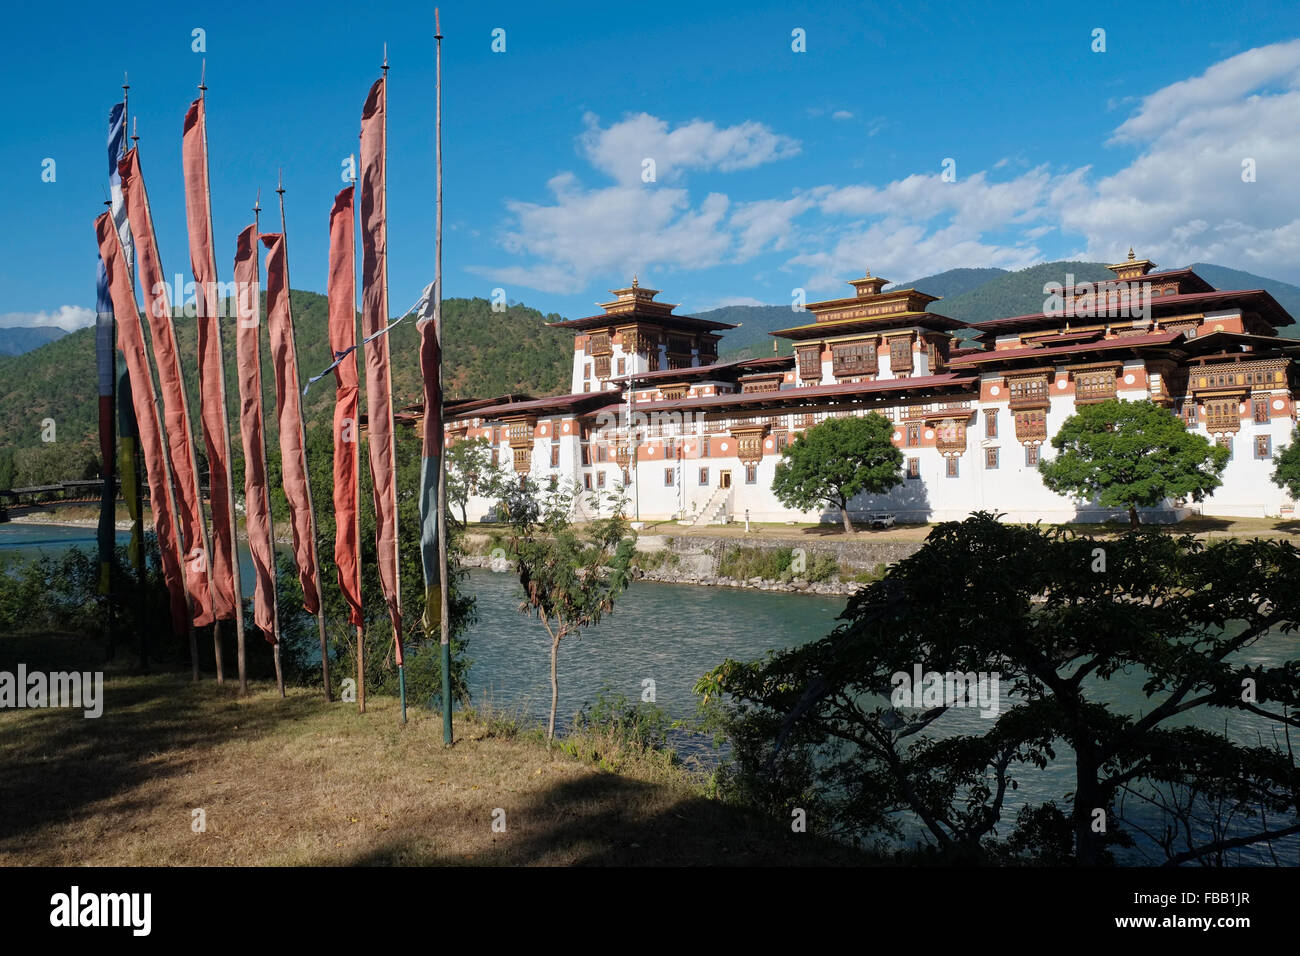 Buddhist prayer flags facing the Punakha Dzong (also known as Pungtang Dechen Photrang Dzong), Punakha, Bhutan. - Stock Image